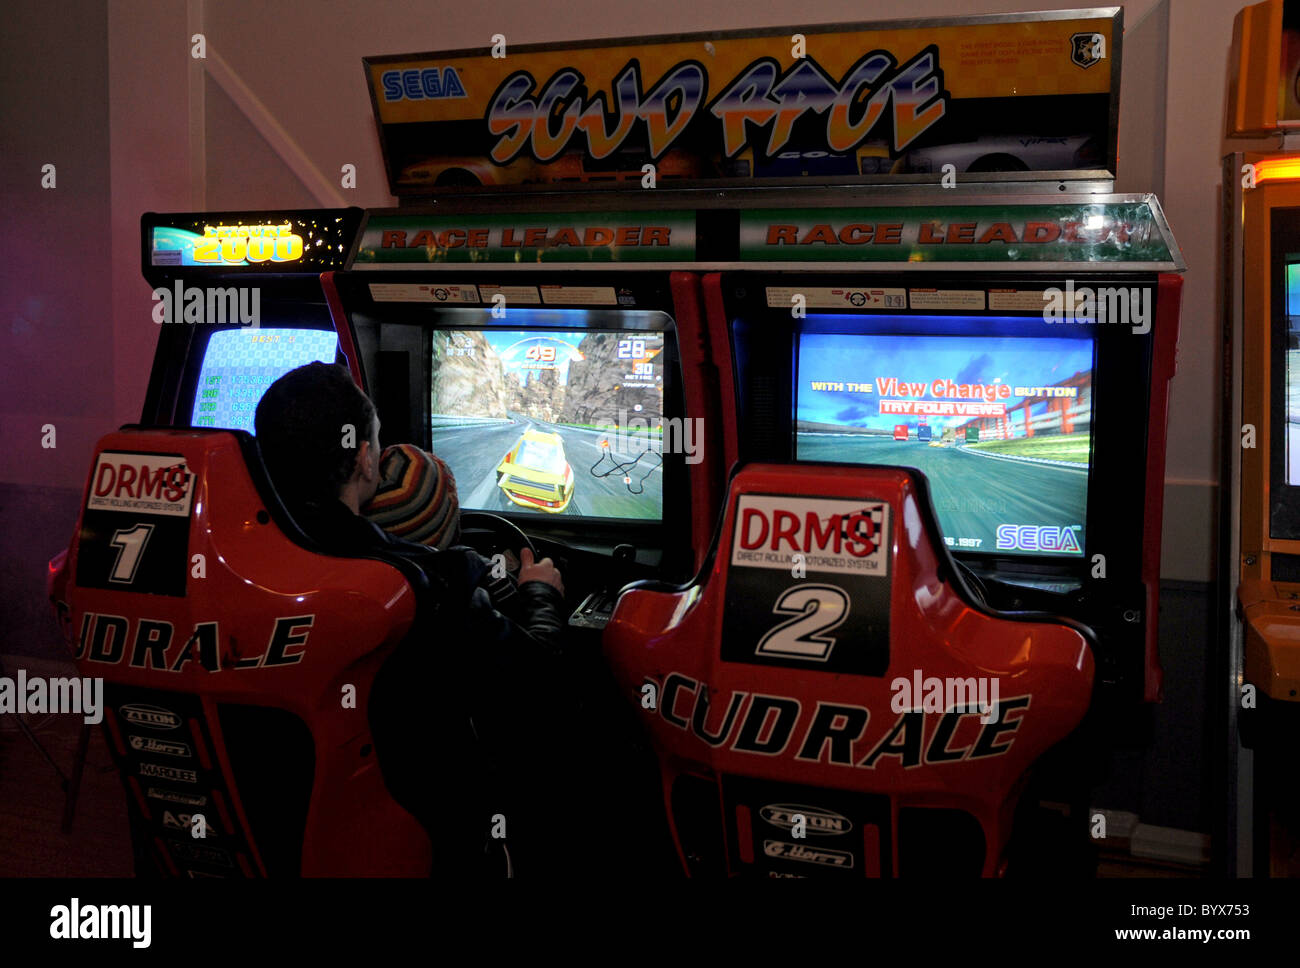 A father and son play video games in an arcade - Stock Image